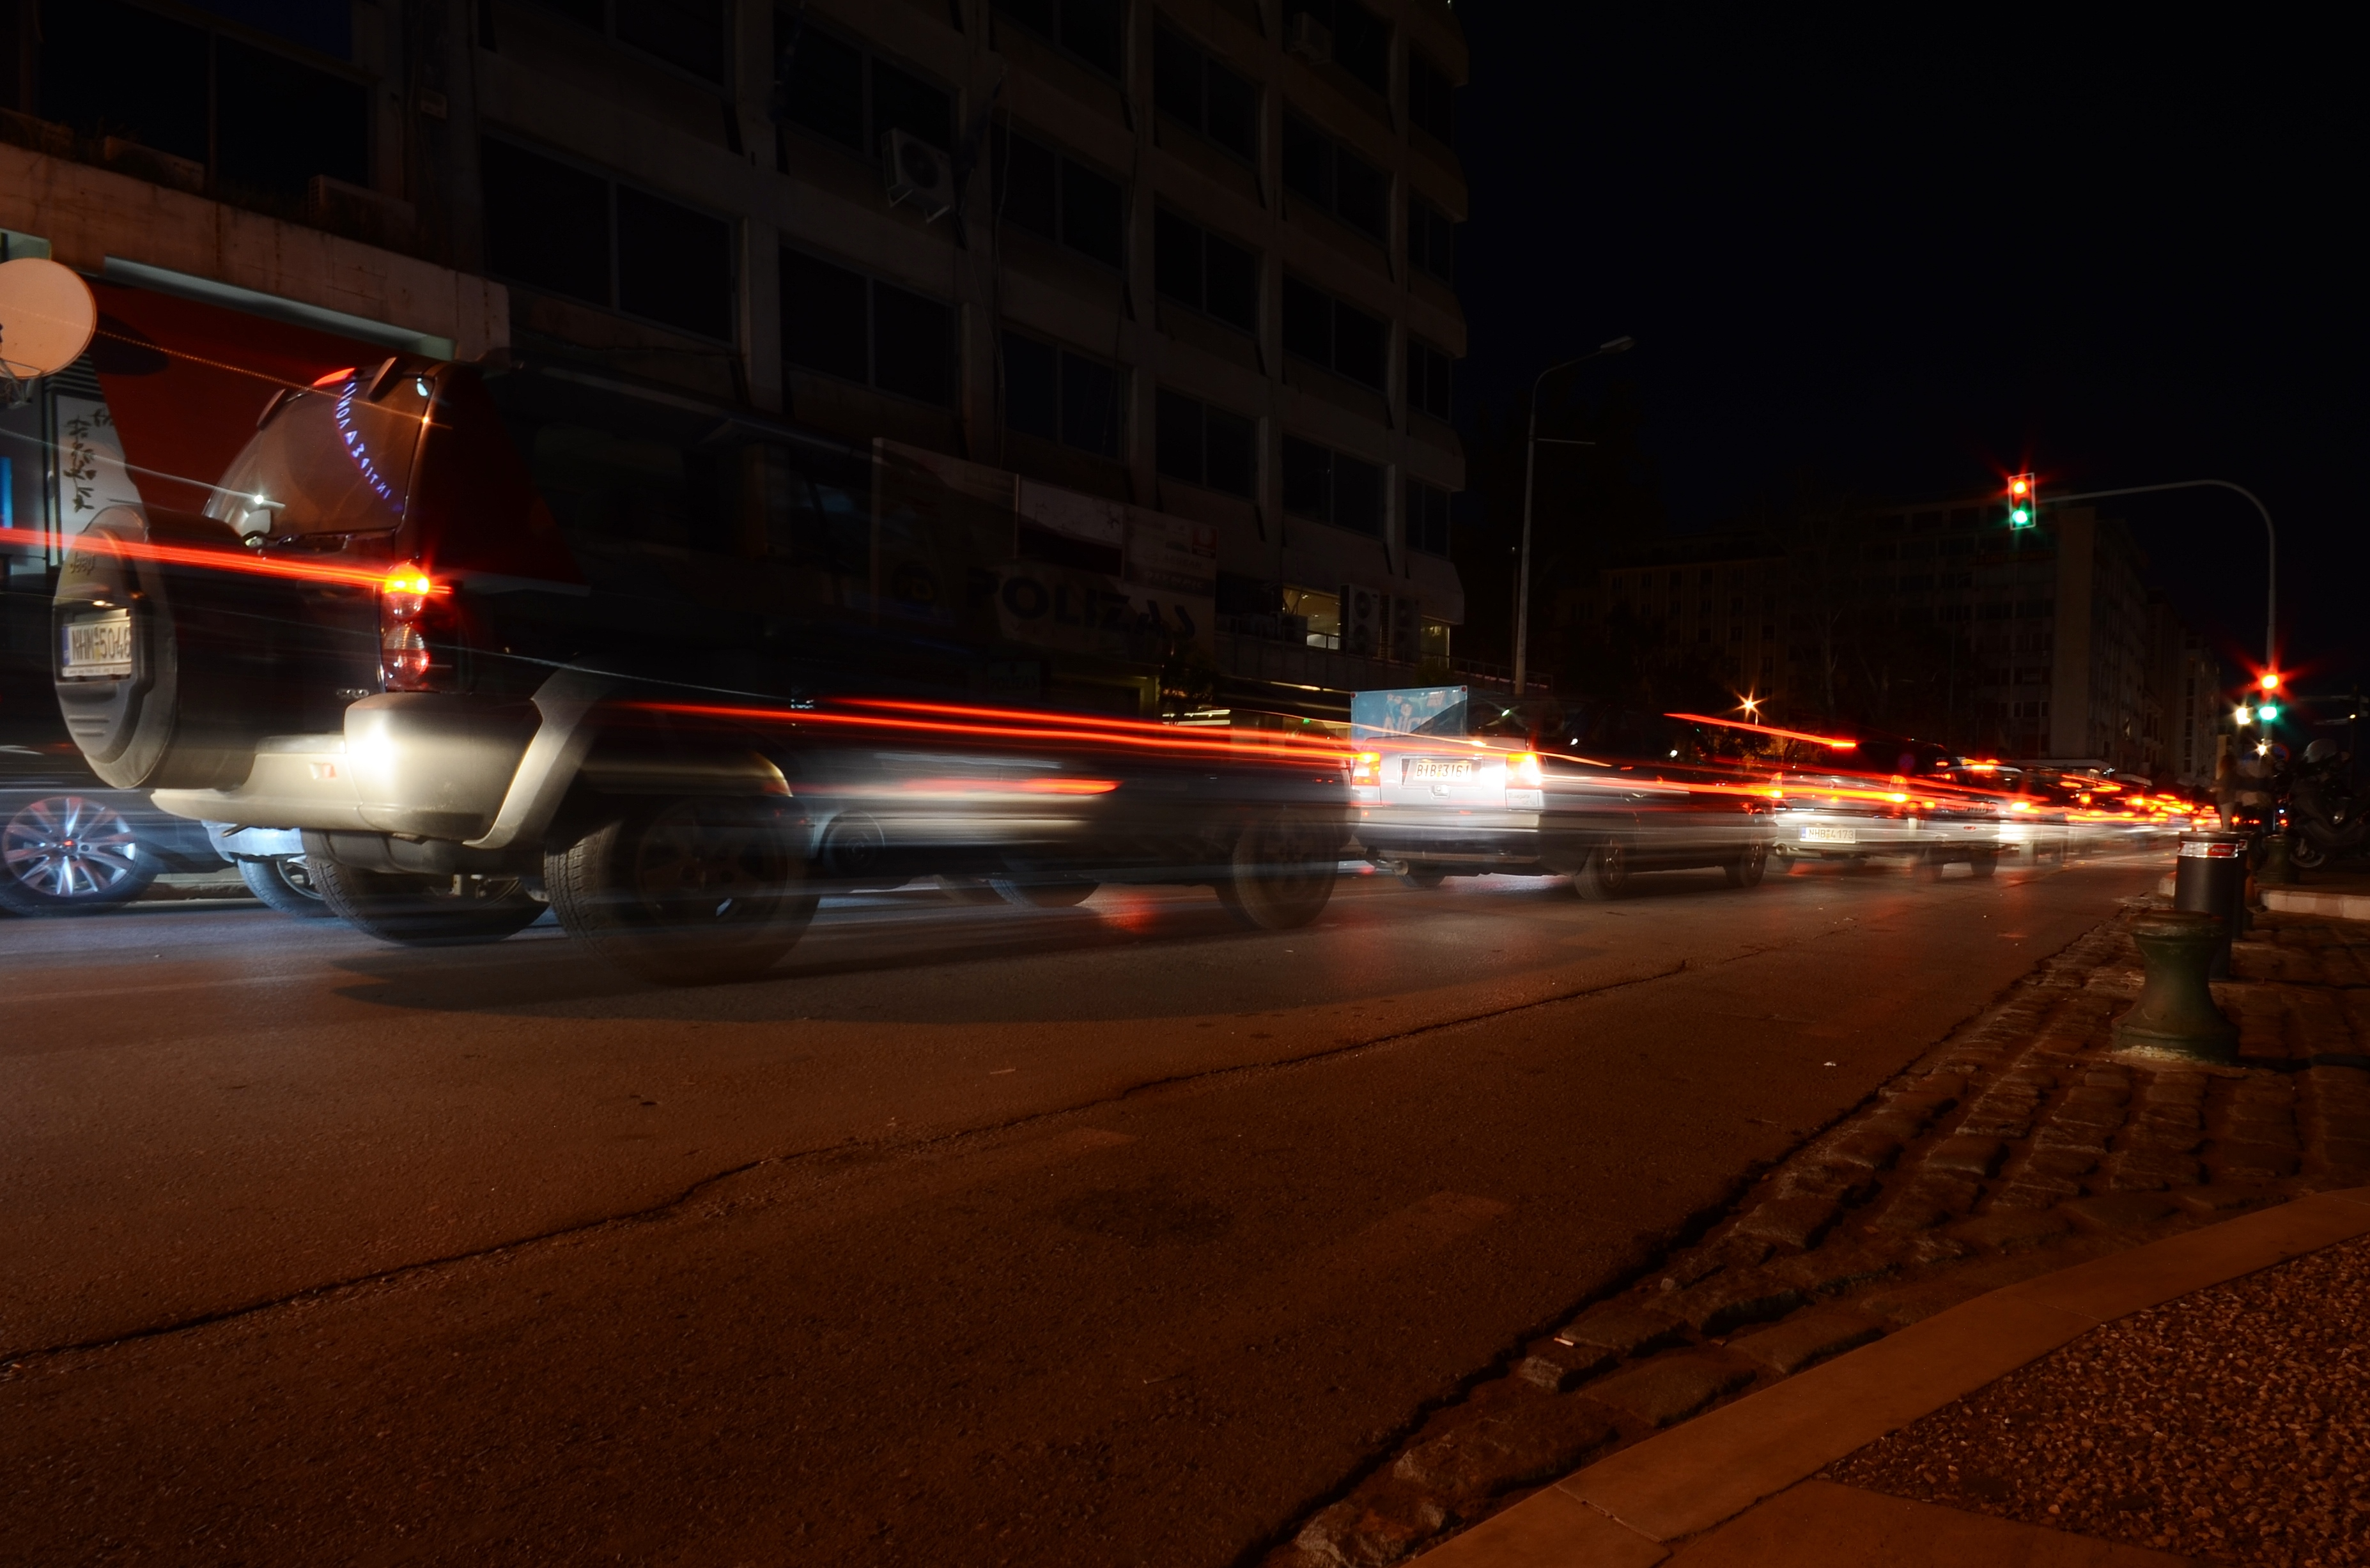 cars-long-exposure-night-3730